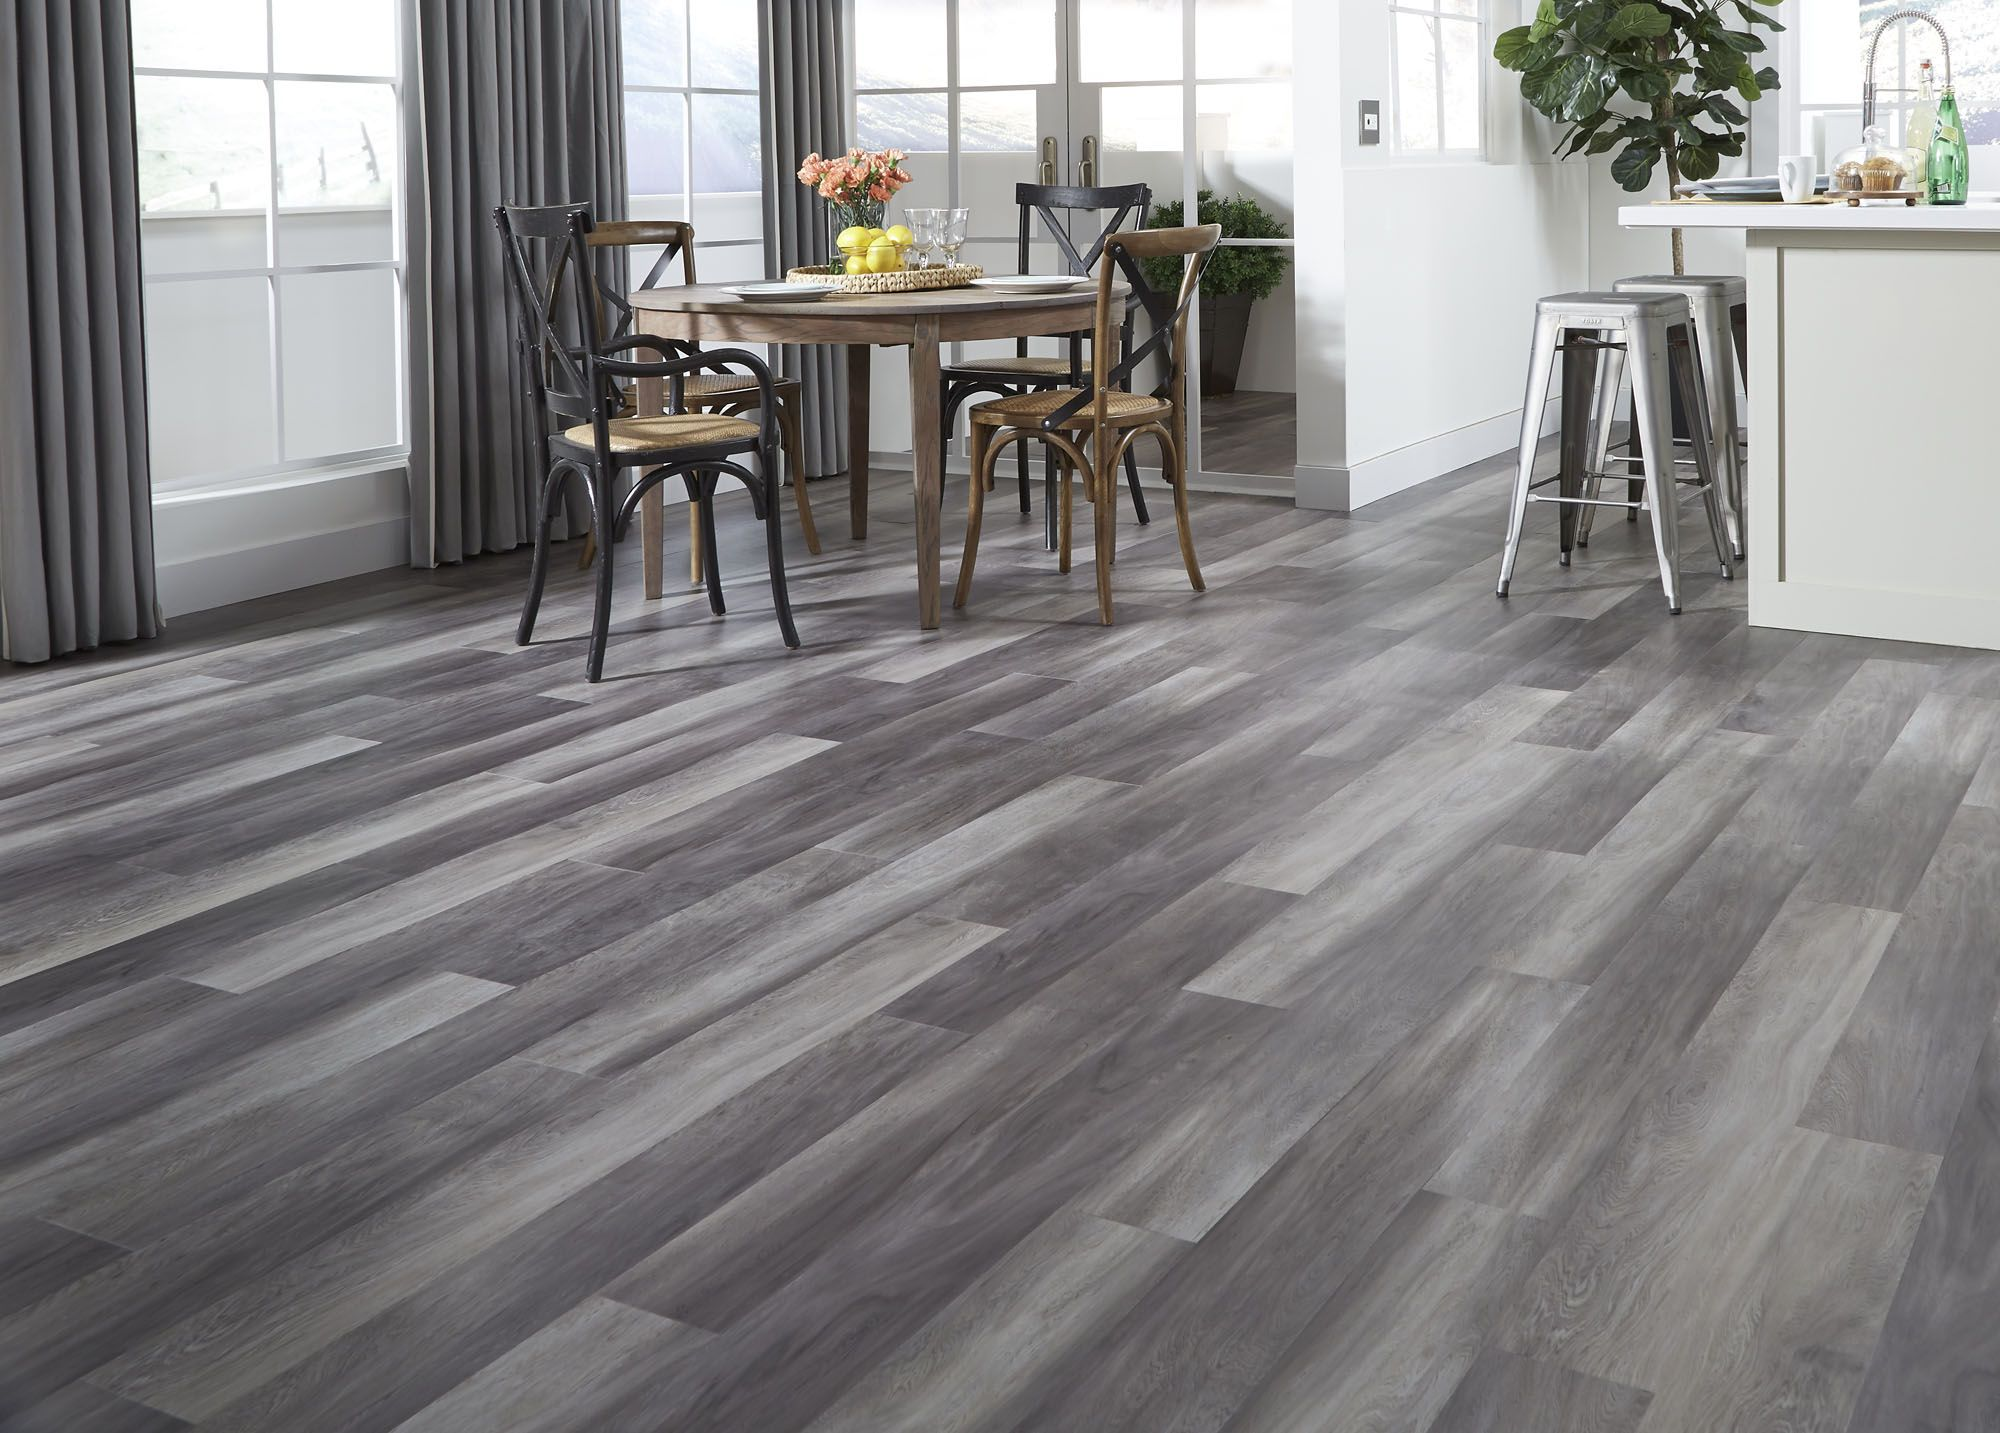 Stormy Gray Oak A Waterproof Luxury Vinyl Plank